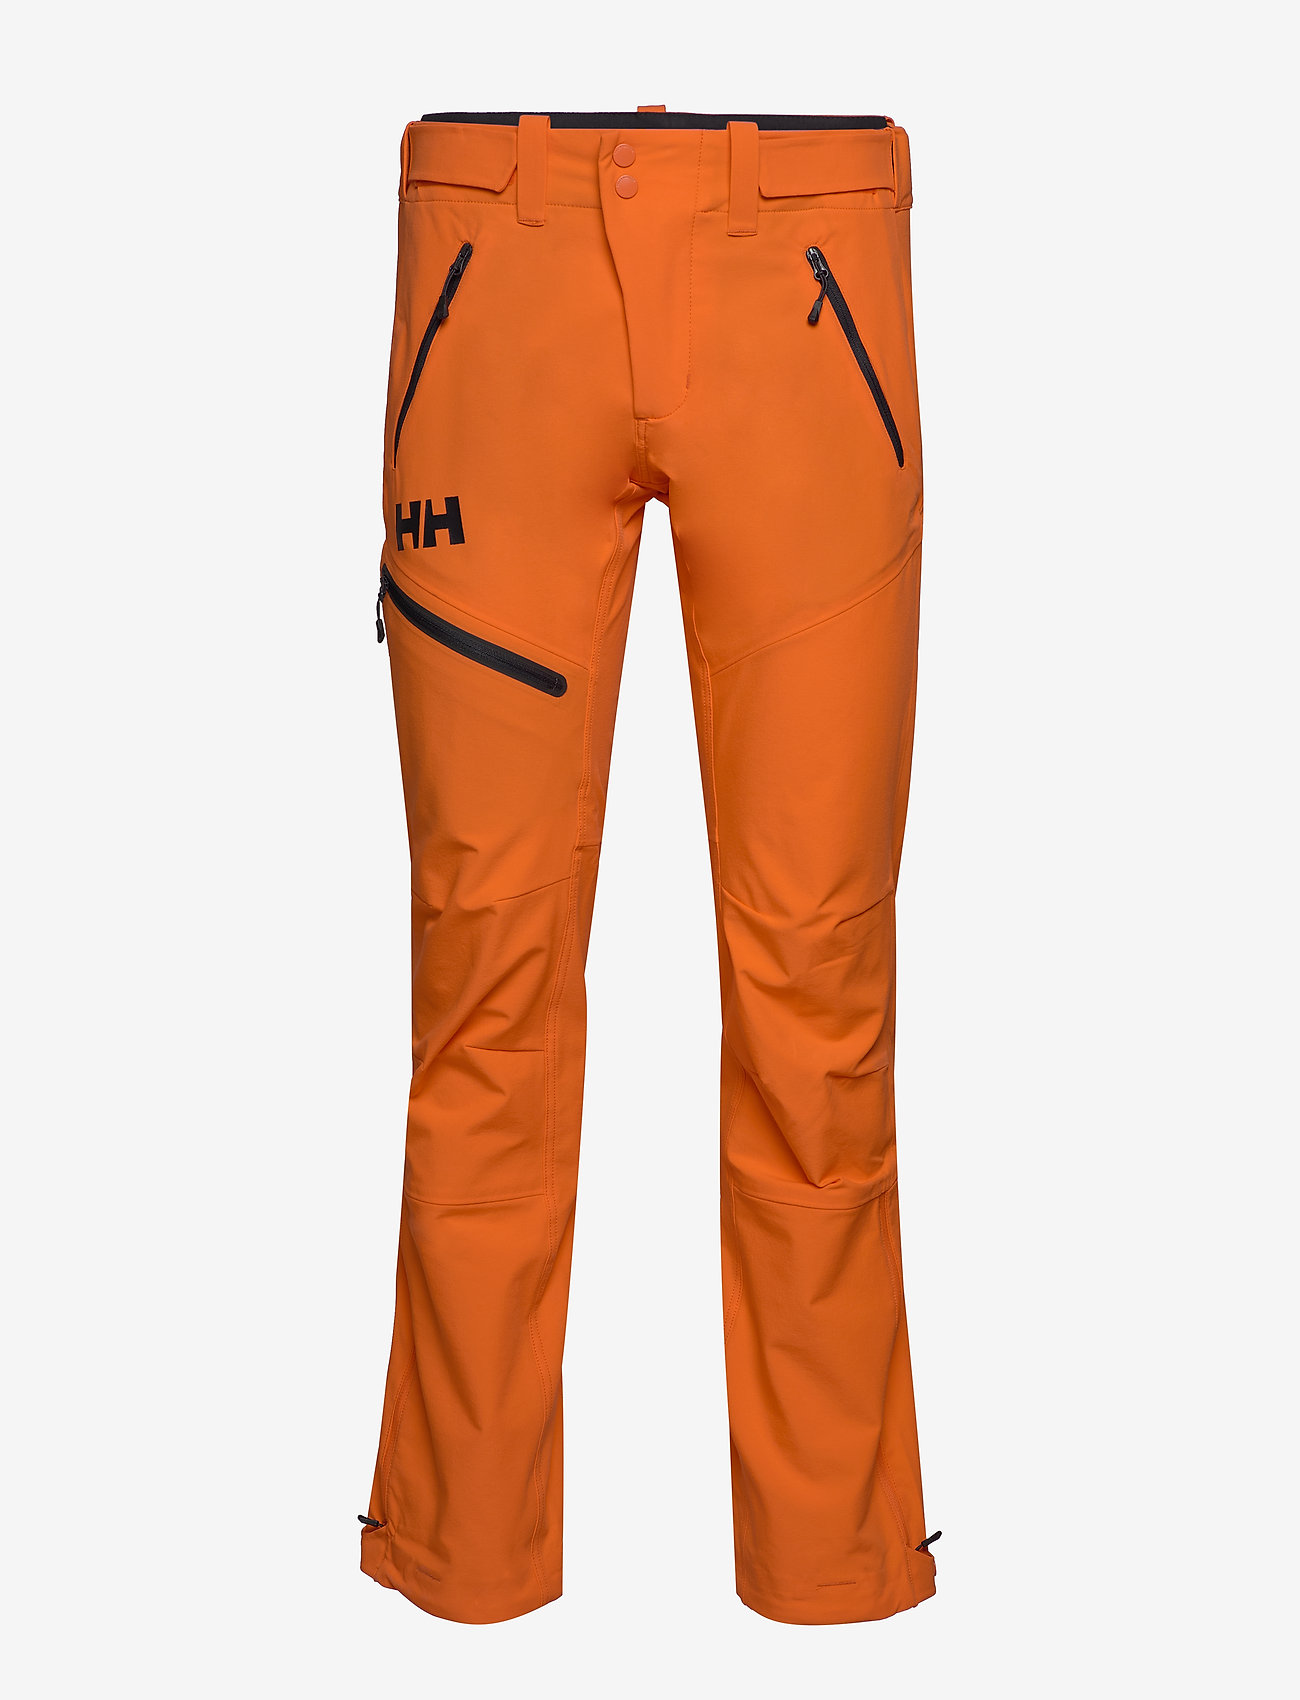 Helly Hansen - ODIN HUGINN PANT - ulkohousut - blaze orange - 0